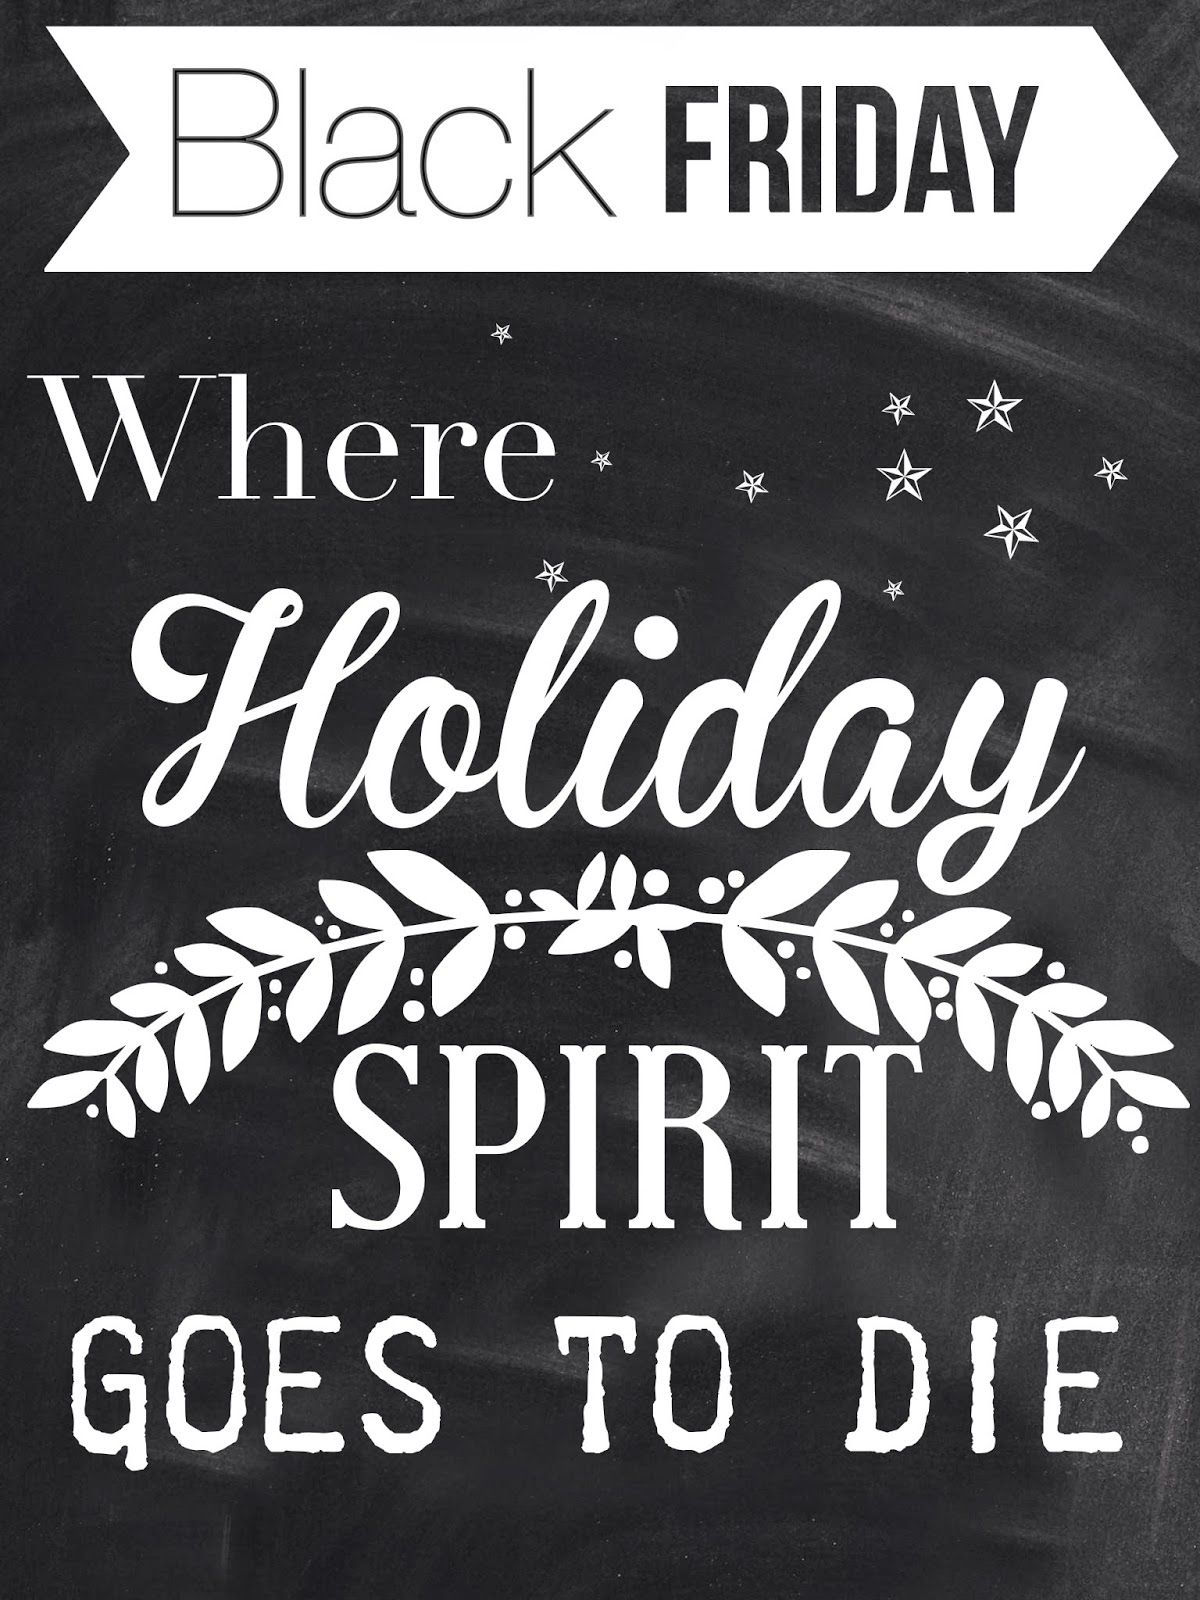 Lou Lou Girls Black Friday Is Where Holiday Spirit Goes To Die Friday Quotes Funny Black Friday Funny Black Friday Quotes